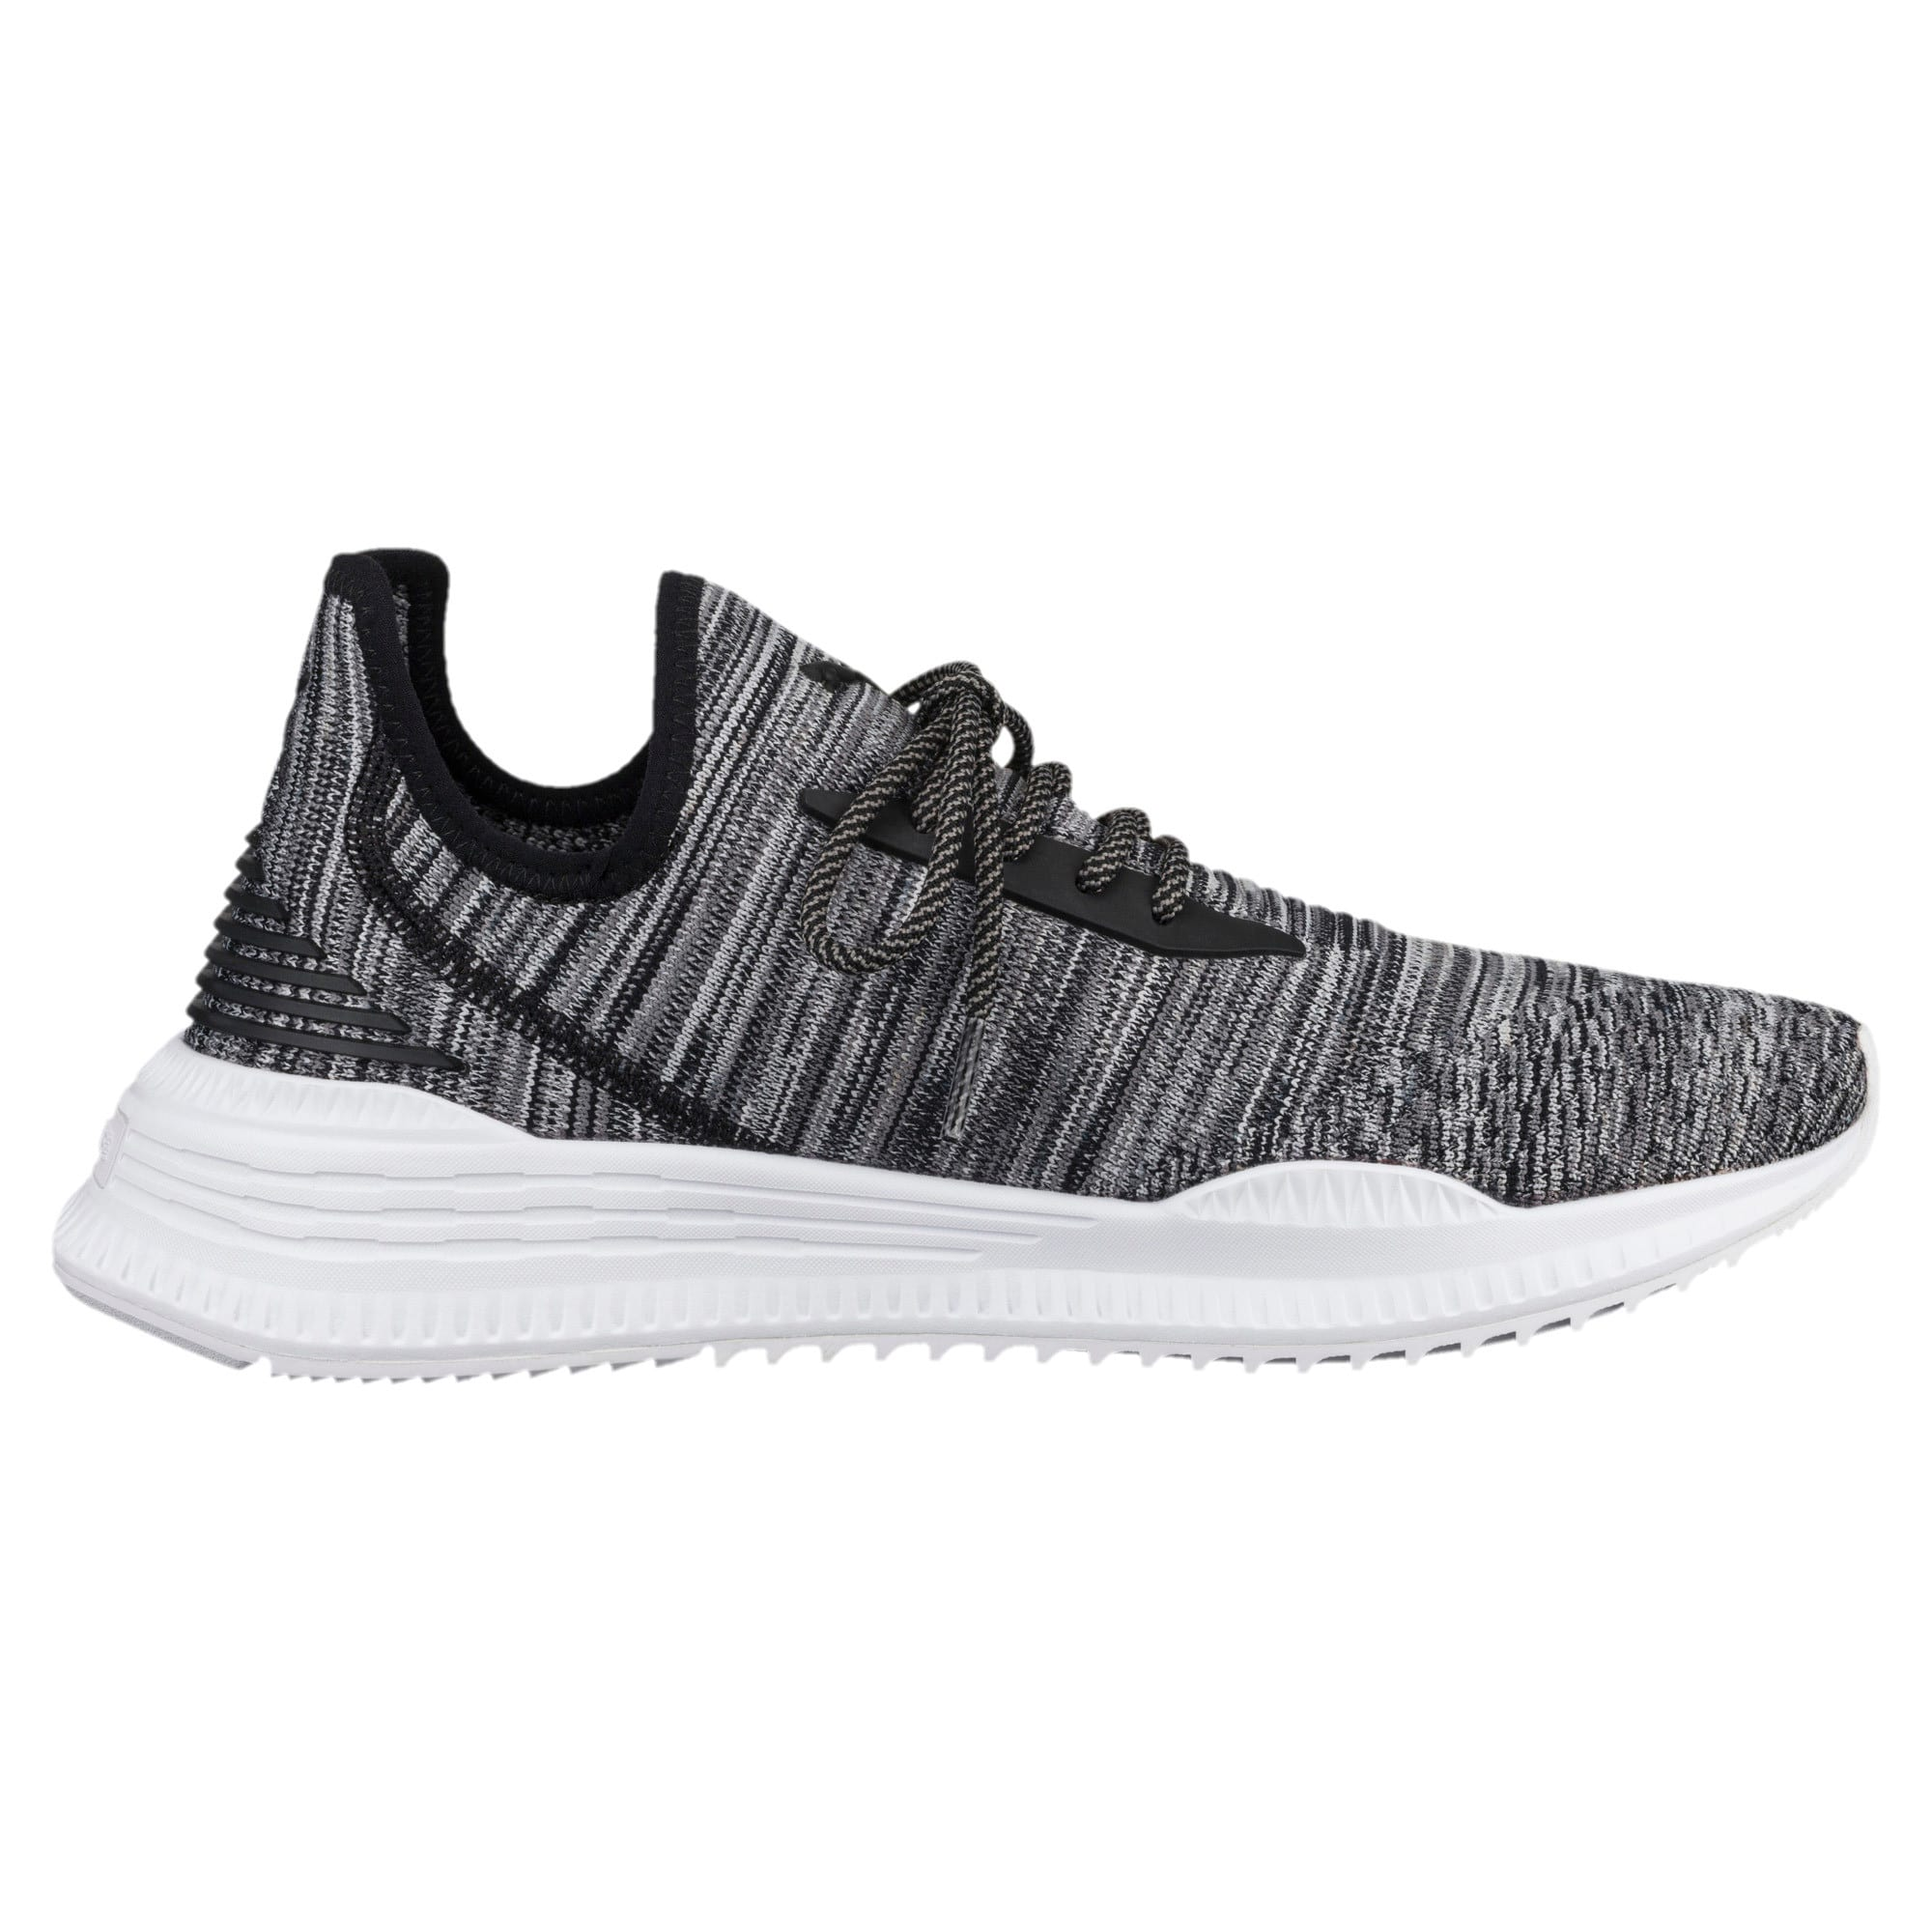 AVID evoKNIT Summer Running Shoes, P Black-QUIET SHADE-P White, large